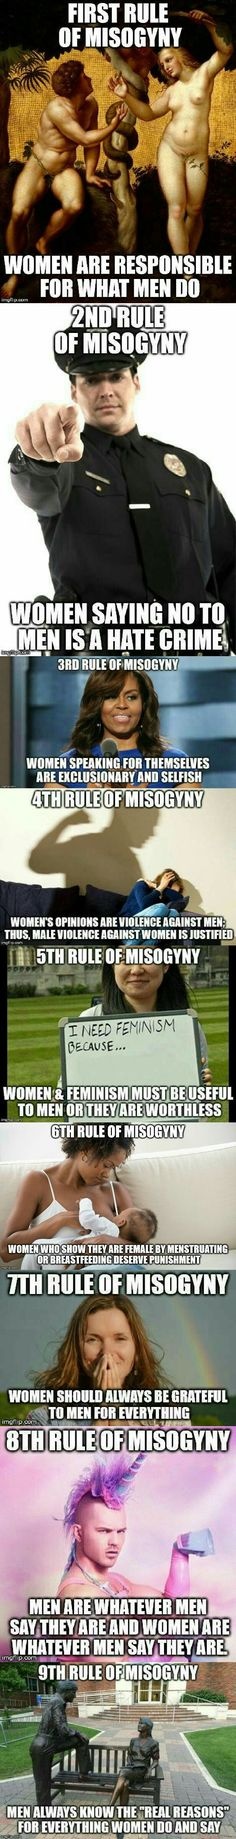 Rules of misogyny | all of these are ridiculous and asinine and completely accurately describe misogynist attitudes toward women